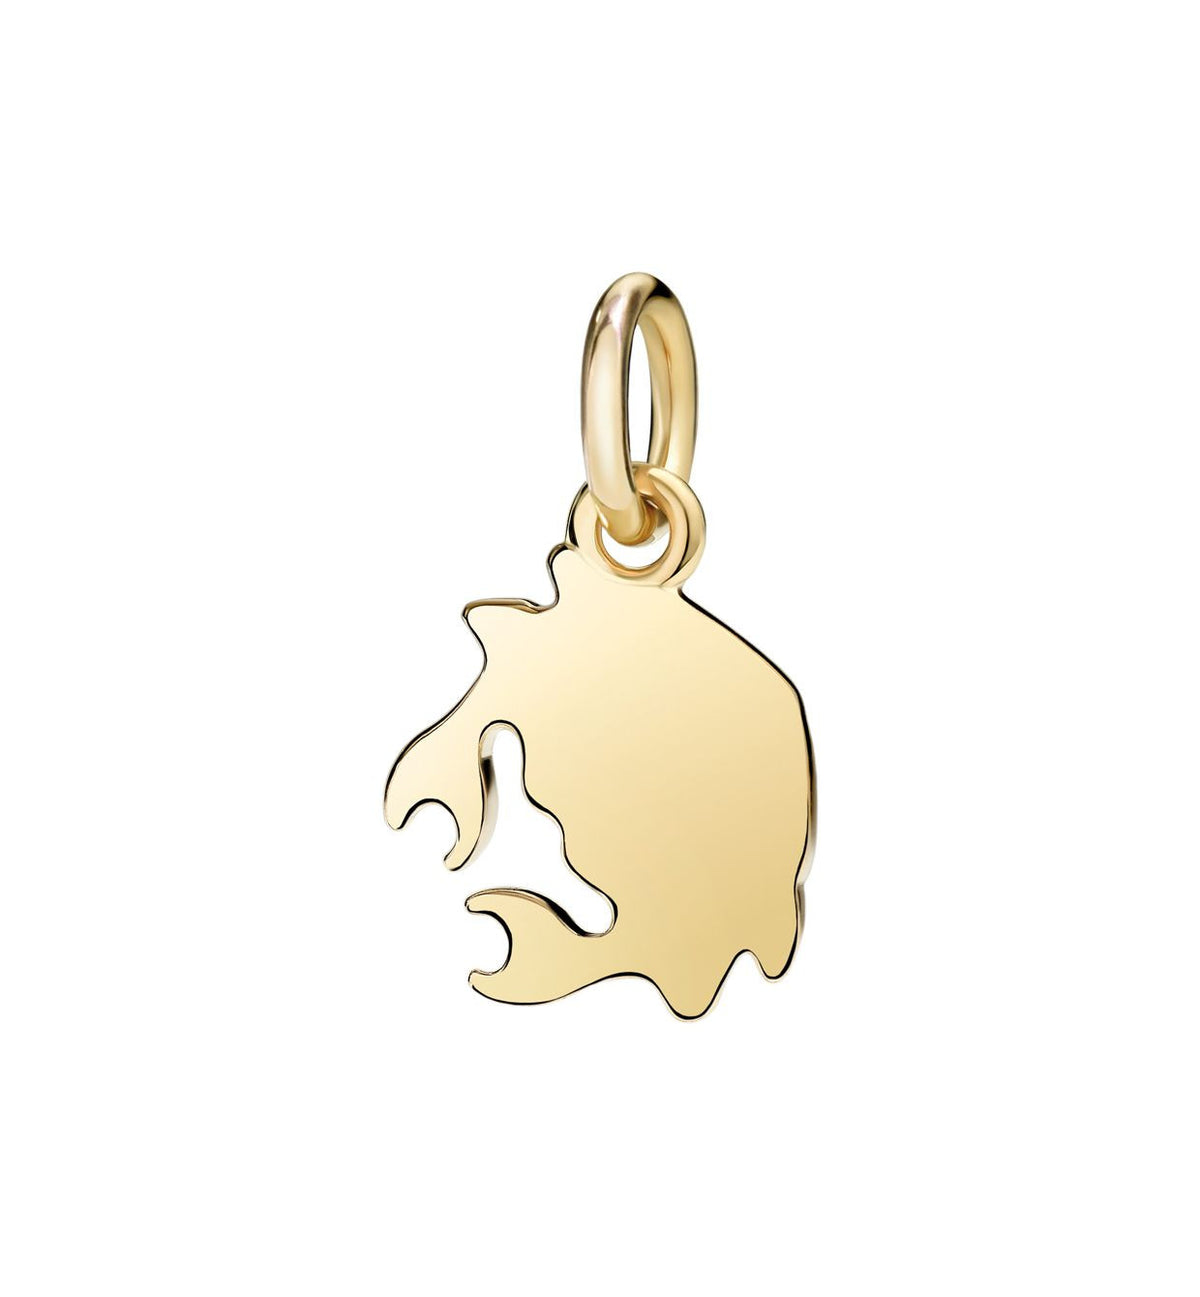 DoDo Crab in 18kt Yellow Gold